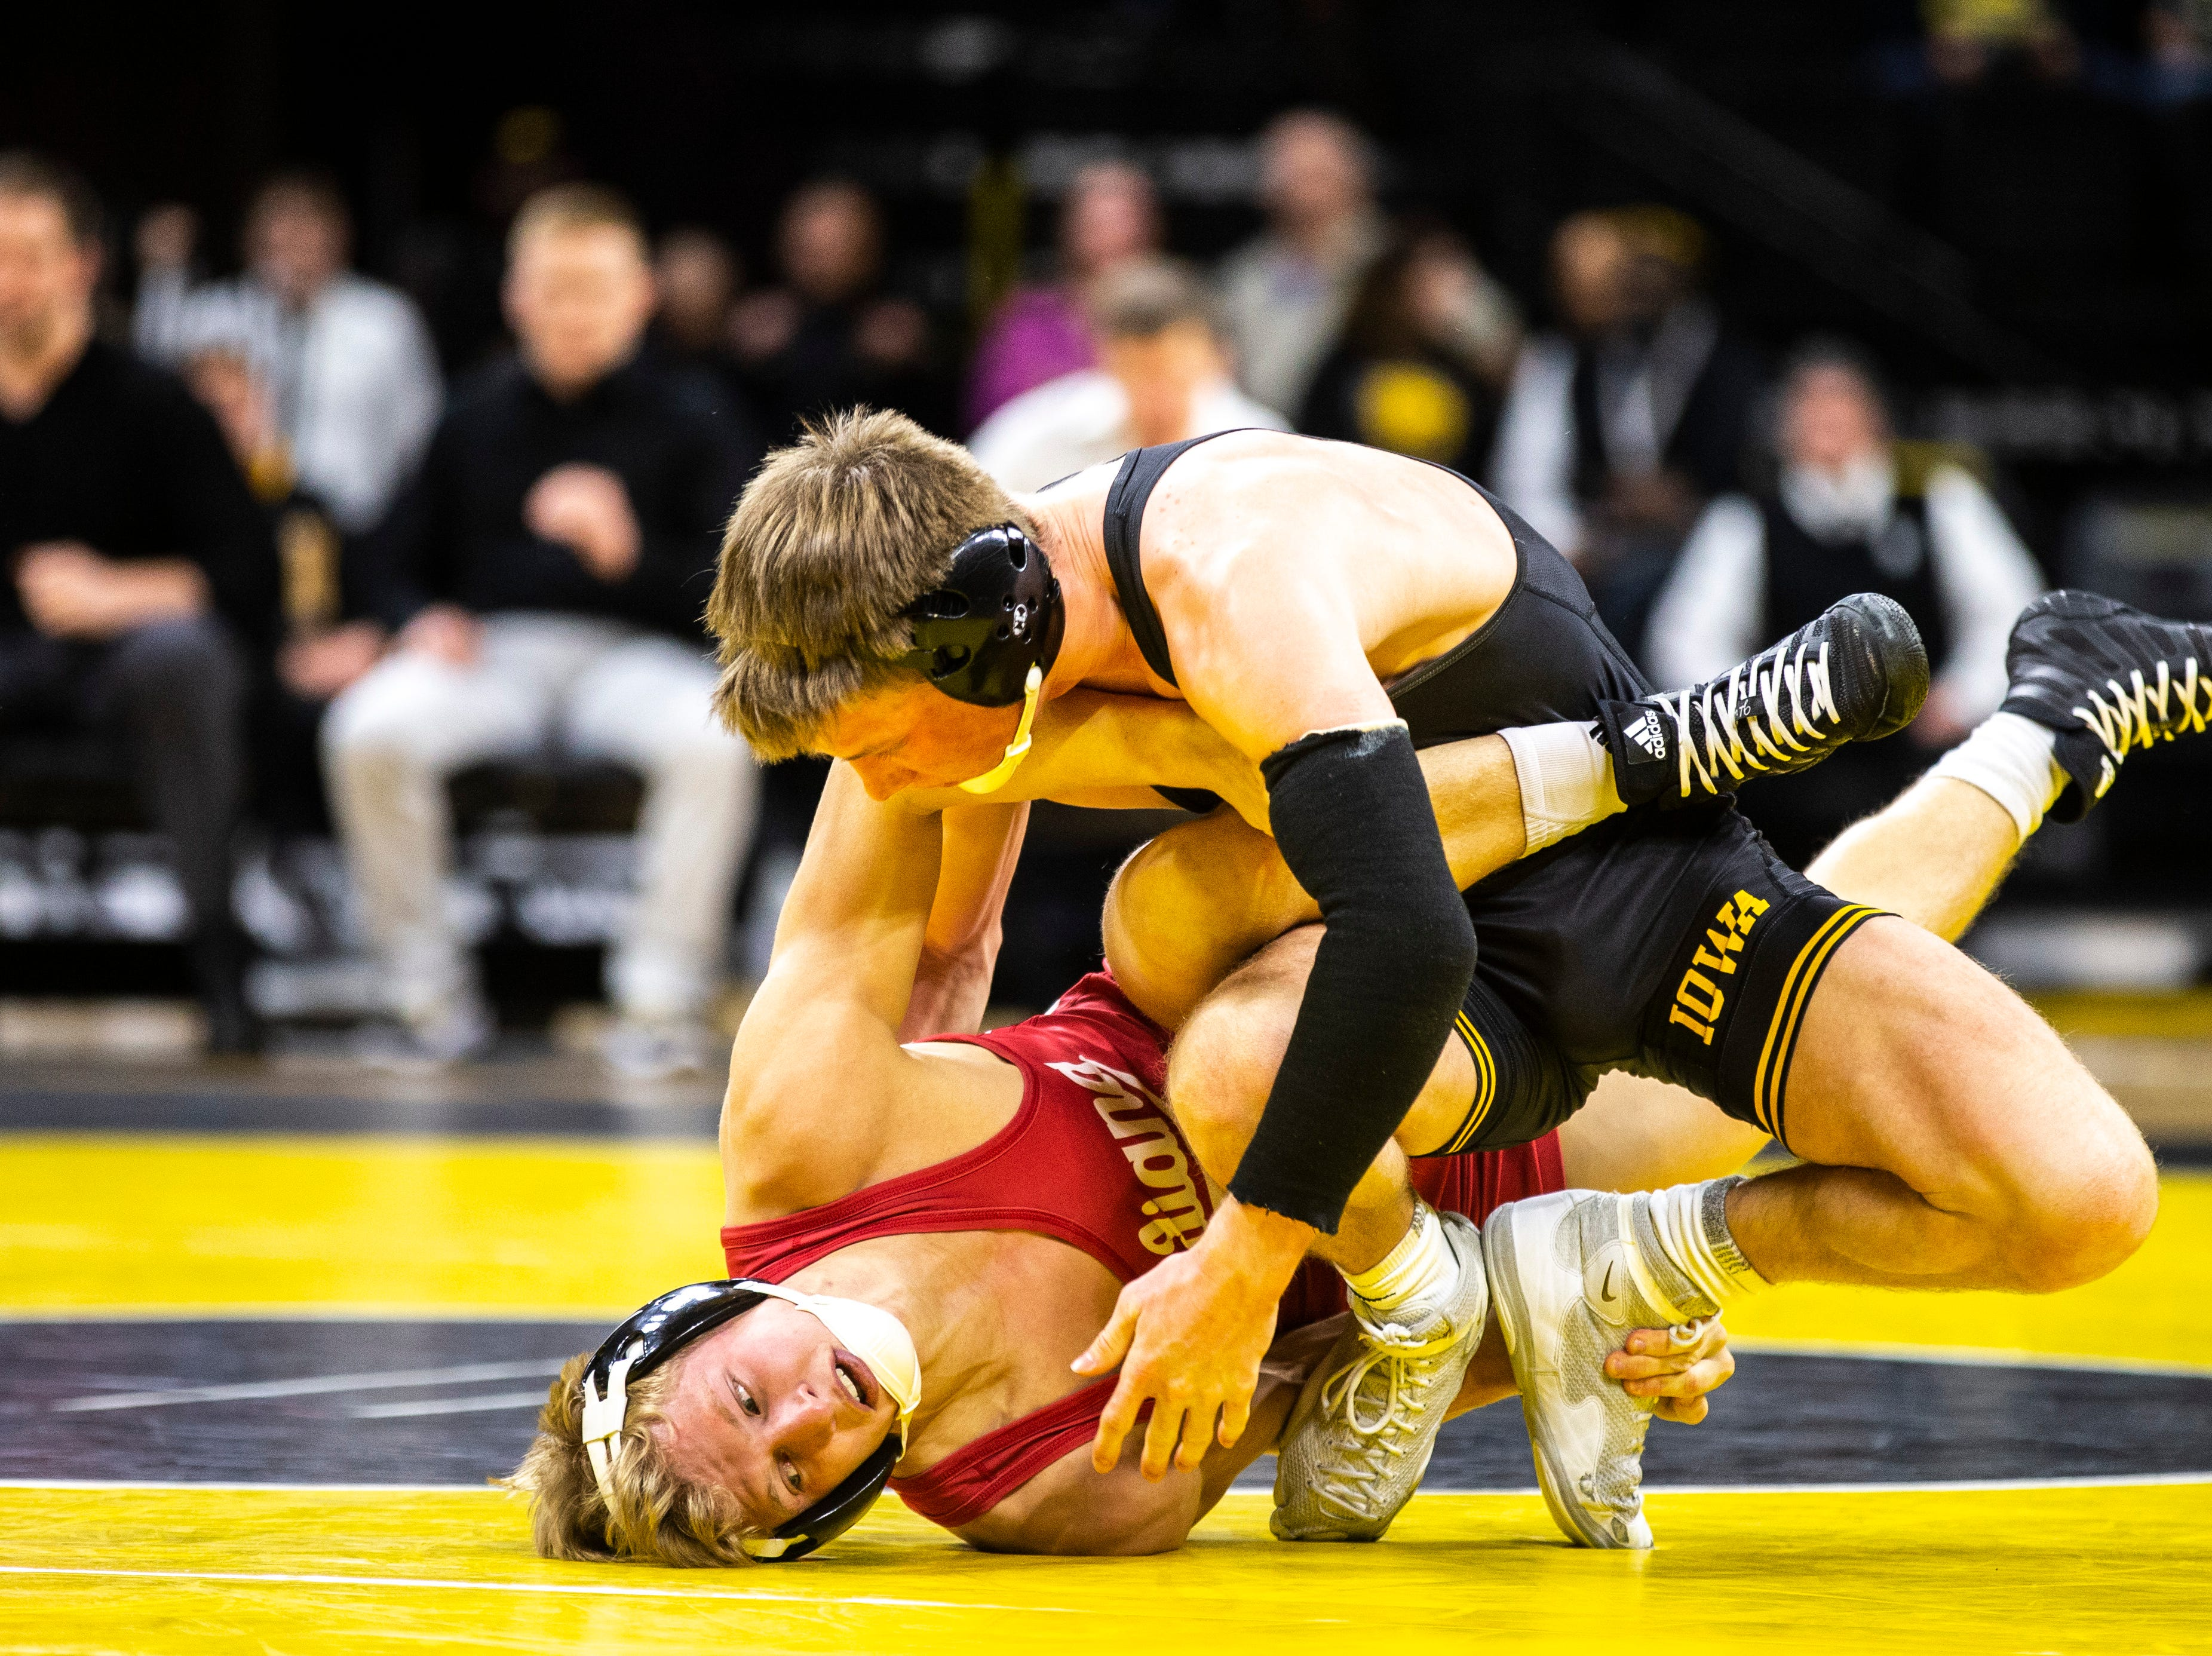 Iowa's Max Murin, right, wrestles Indiana's Kyle Luigs at 141 during a NCAA Big Ten Conference wrestling dual on Friday, Feb. 15, 2019 at Carver-Hawkeye Arena in Iowa City, Iowa.